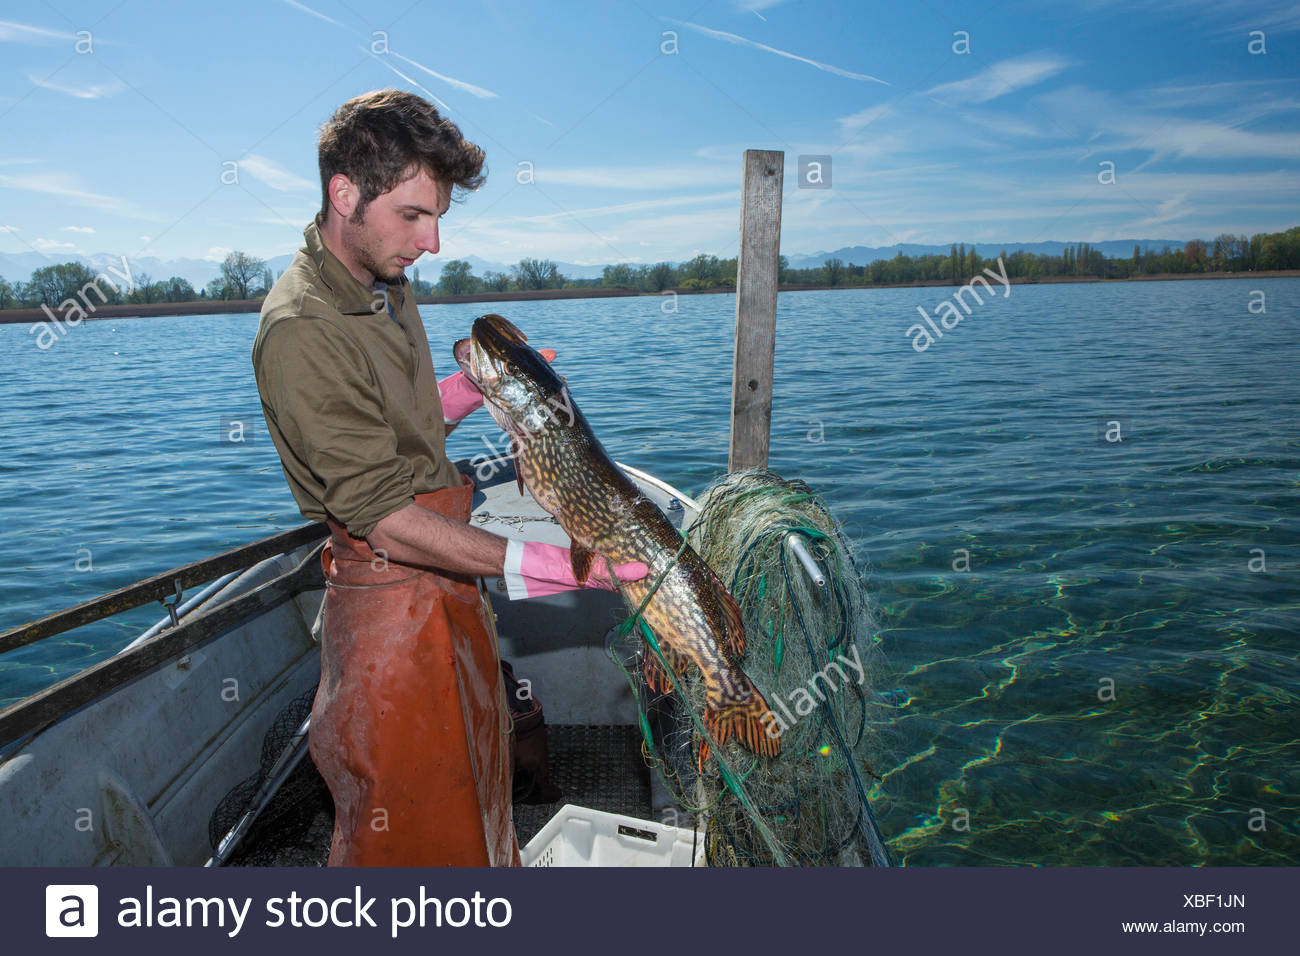 Lake Constance, fisherman, Lake Constance, spring, Claudio Timo Görtz, work, job, occupation, profession, occupations, professio - Stock Image